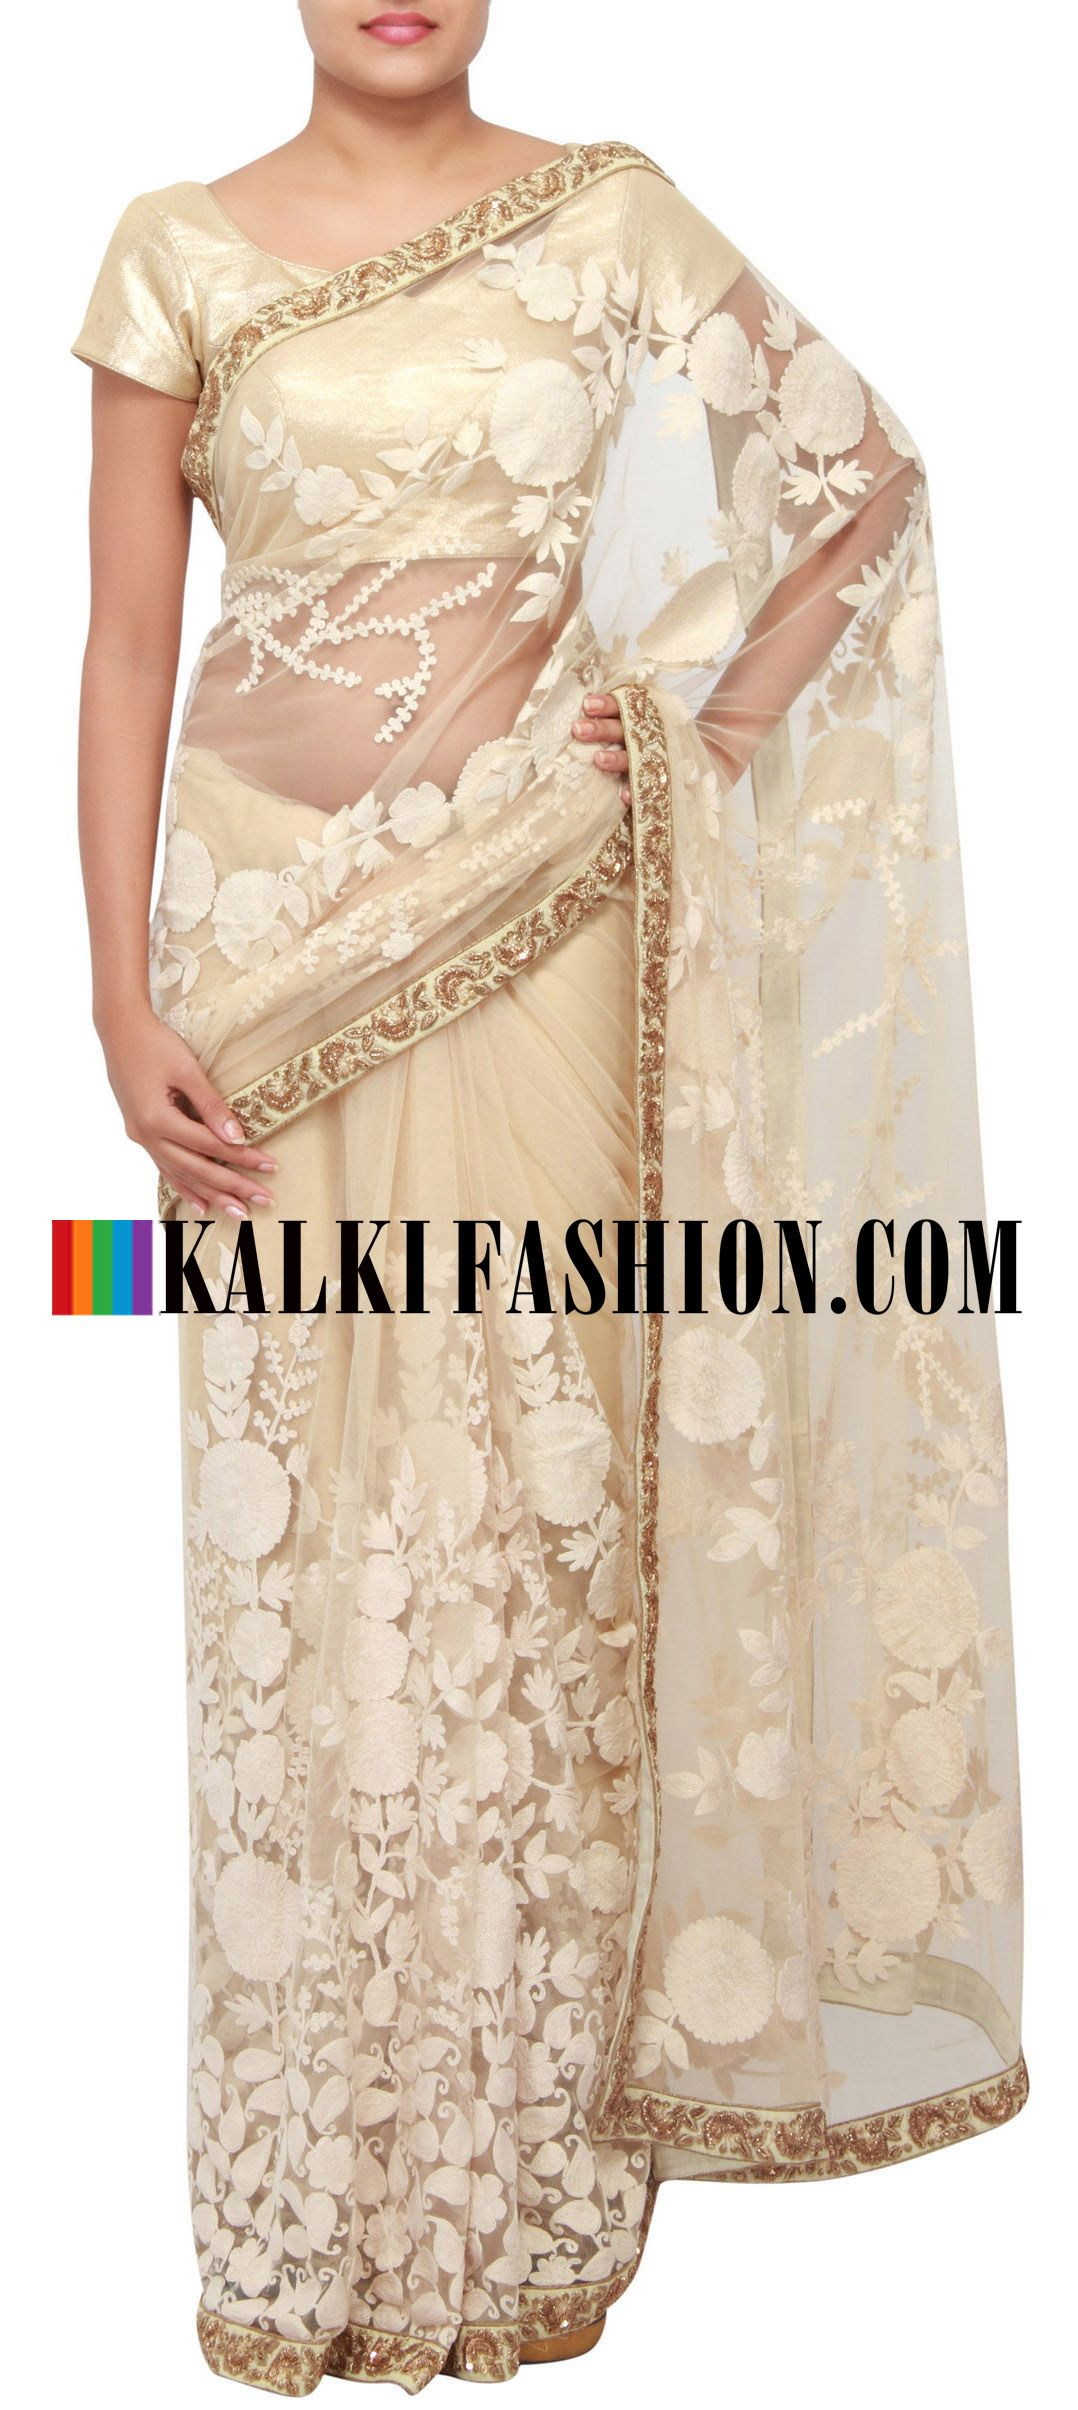 Get this beautiful saree here: http://www.kalkifashion.com/cream-saree-embellished-in-thread-embroidery-only-on-kalki.html Free shipping worldwide.